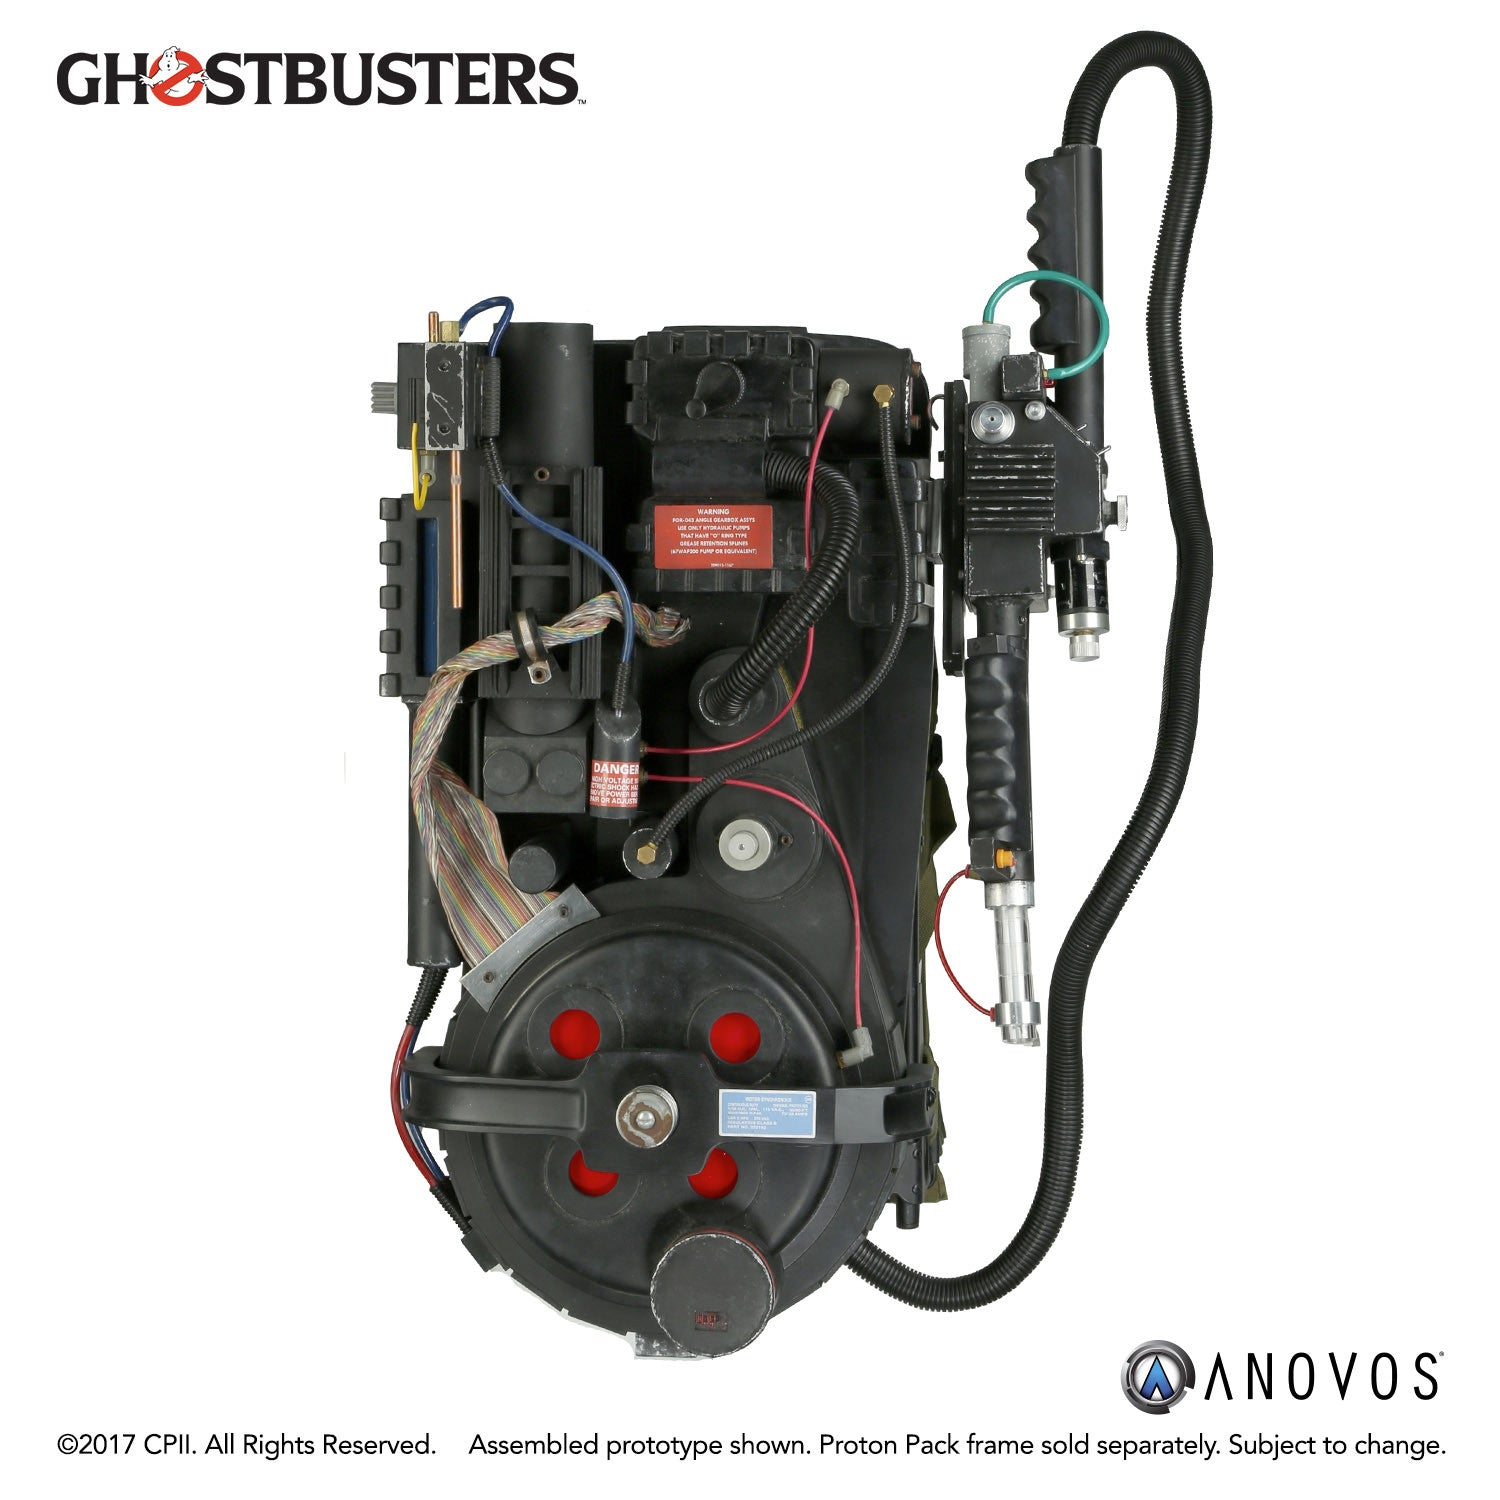 Ghostbusters Proton Pack Kit Anovos Productions Llc